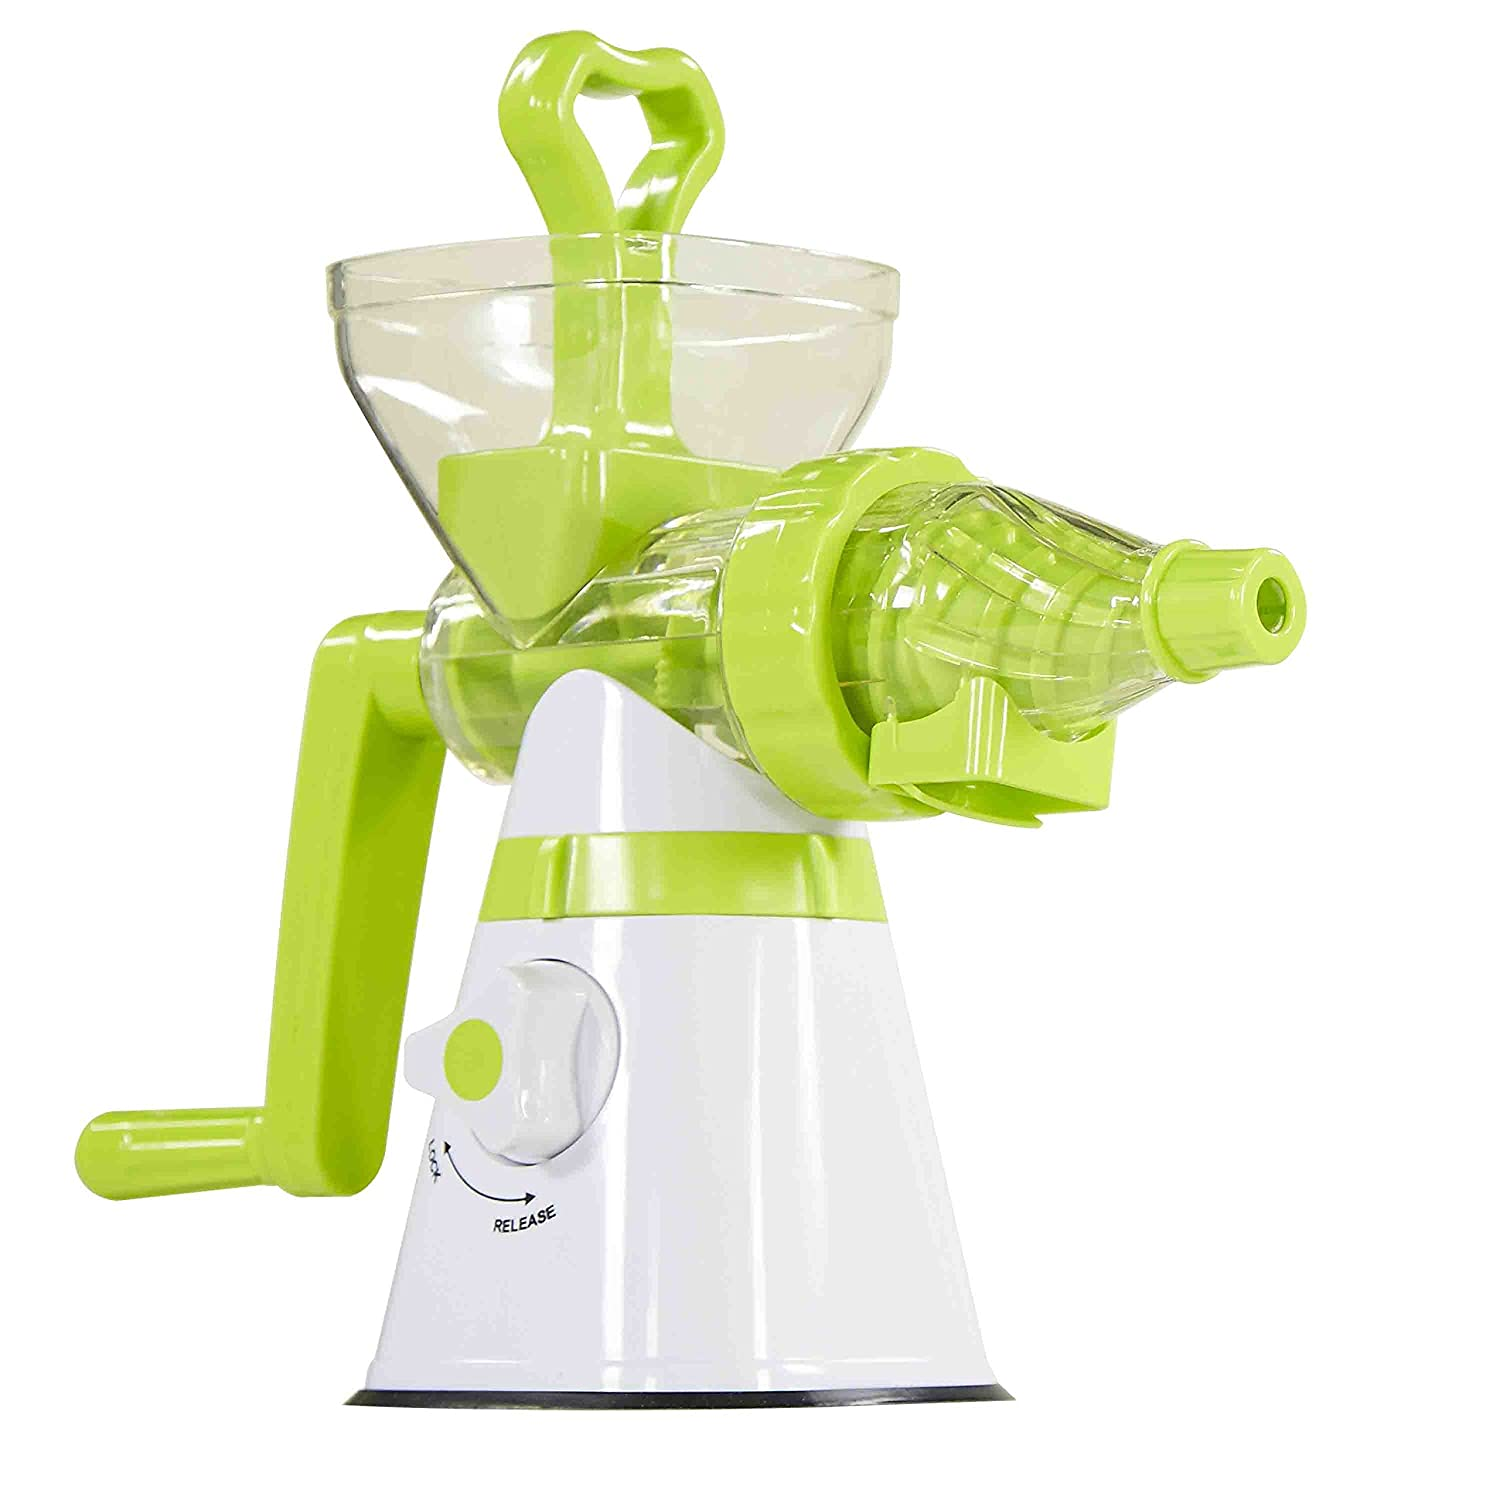 Compra shinkoda sk-326h Manual Cold Press Slow juicer en Amazon.es